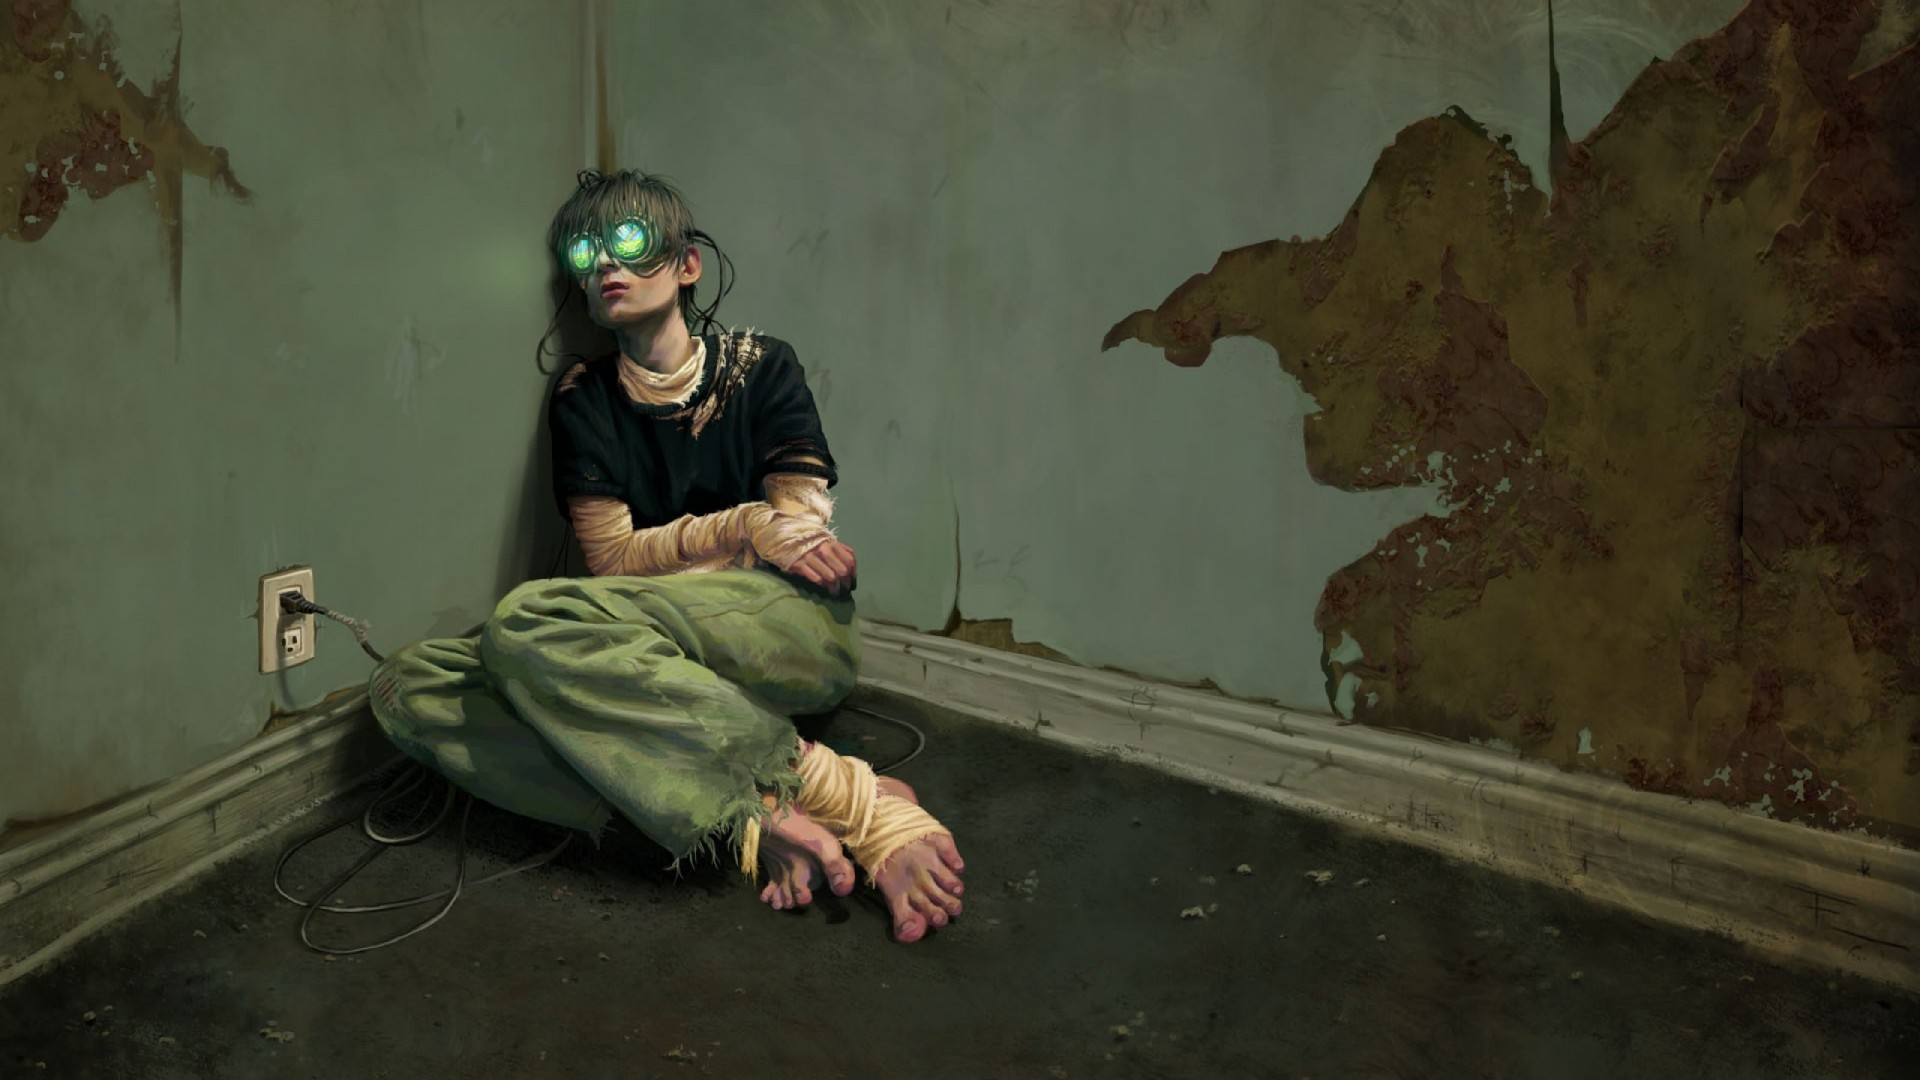 Virtual reality has been shown to increase empathy for those who suffer from mental illness.